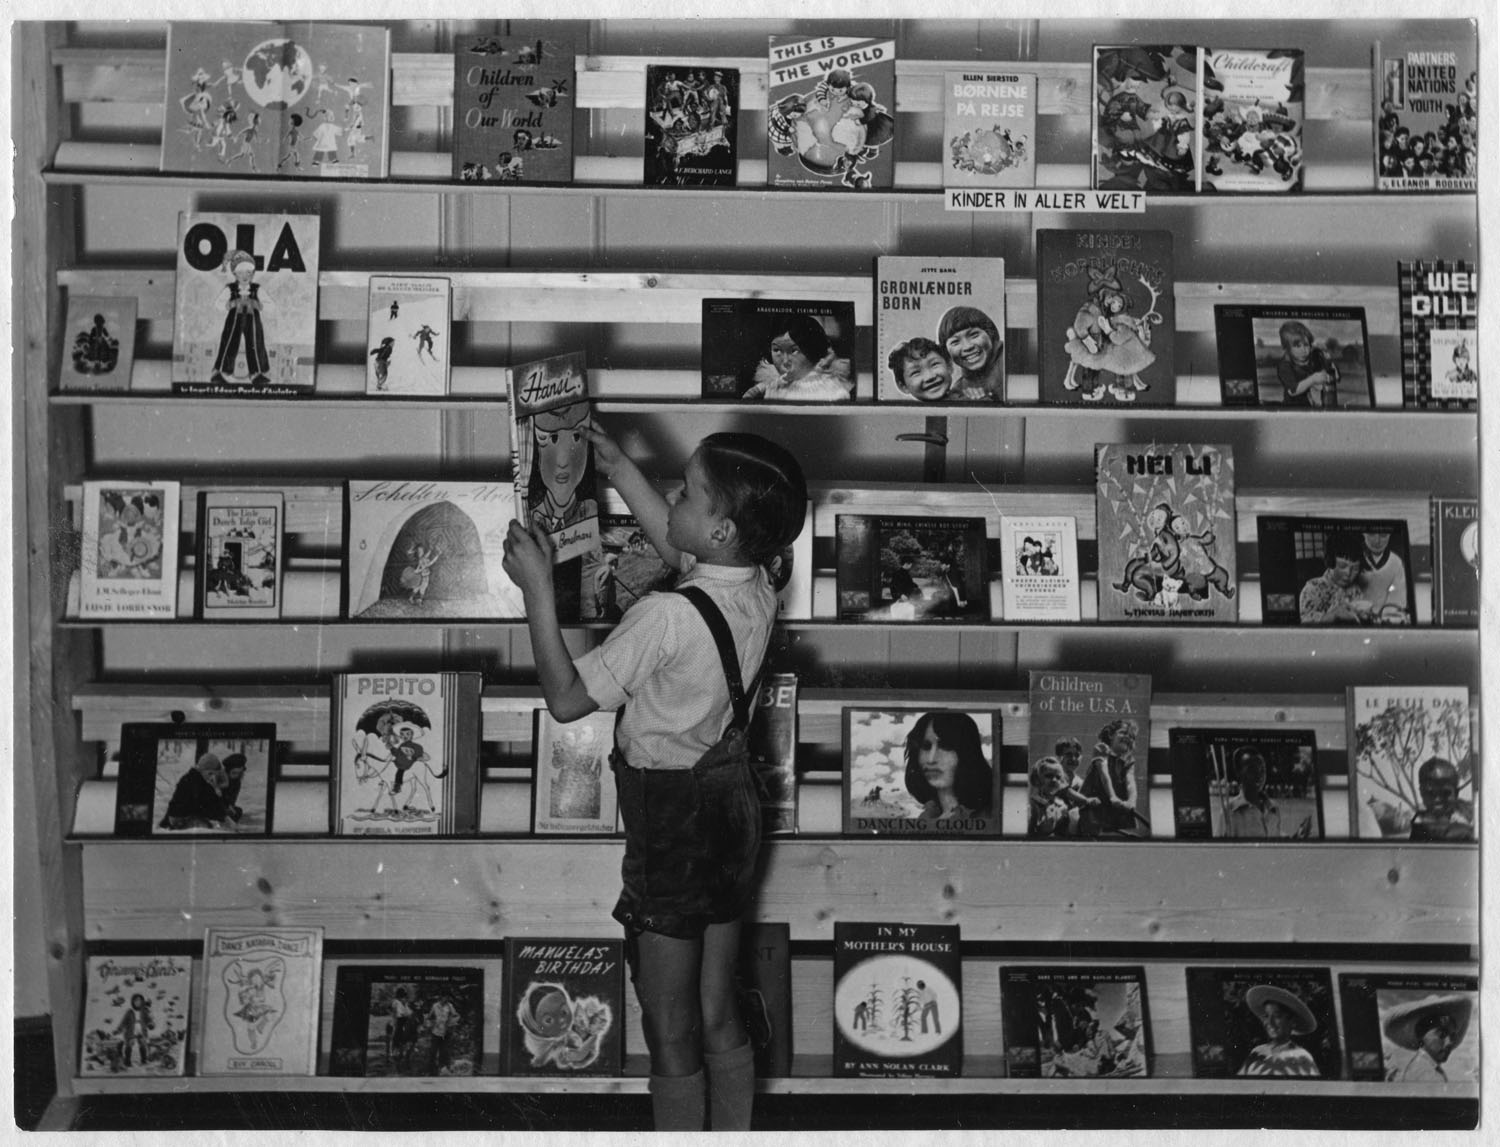 International children's youth book exhibition, 1954 (Germany)